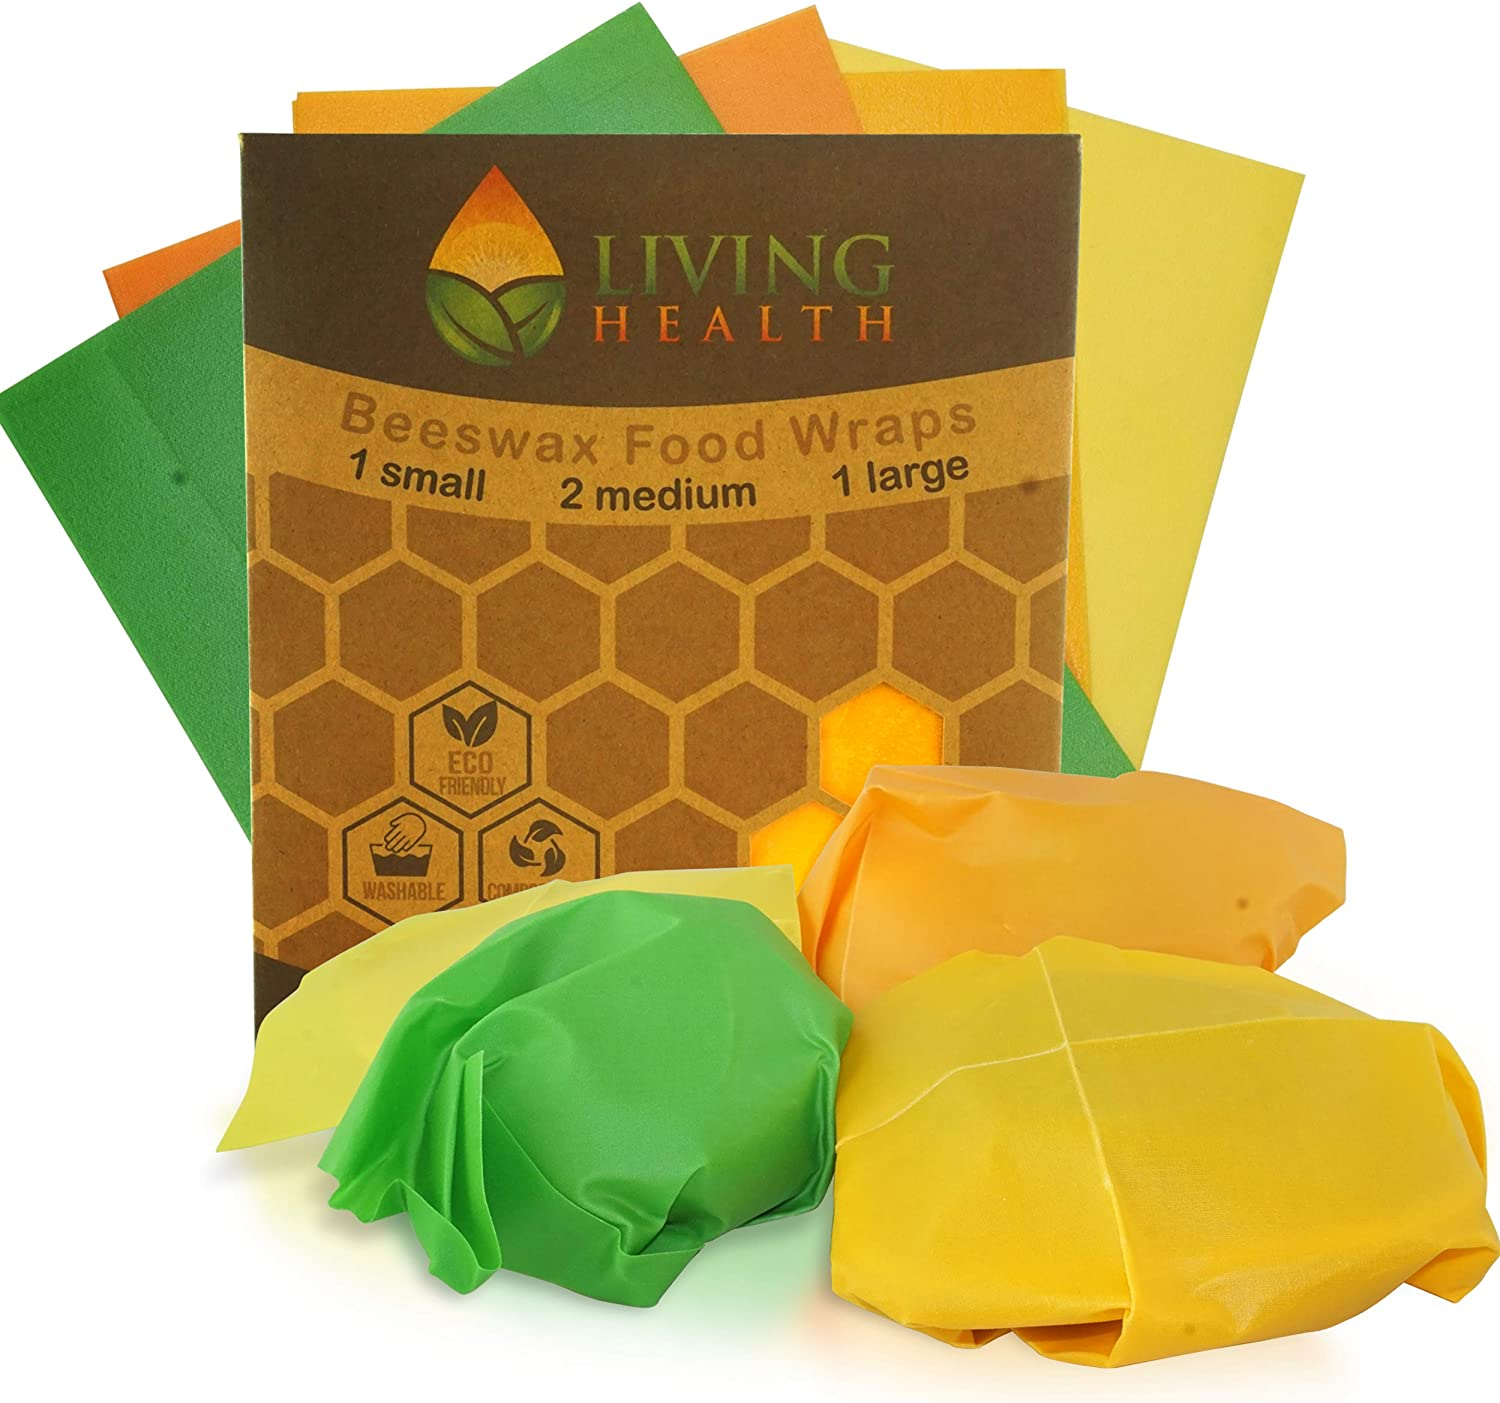 Living Health Beeswax Reusable Food Wrap (1 S, 2 M, 1 L) – Organic, Eco Friendly Wrapper – Keep Fruits, Vegetables, Leftovers Fresh – Alternative to Plastic Cling Wrap and Aluminum or Reynolds Wrap